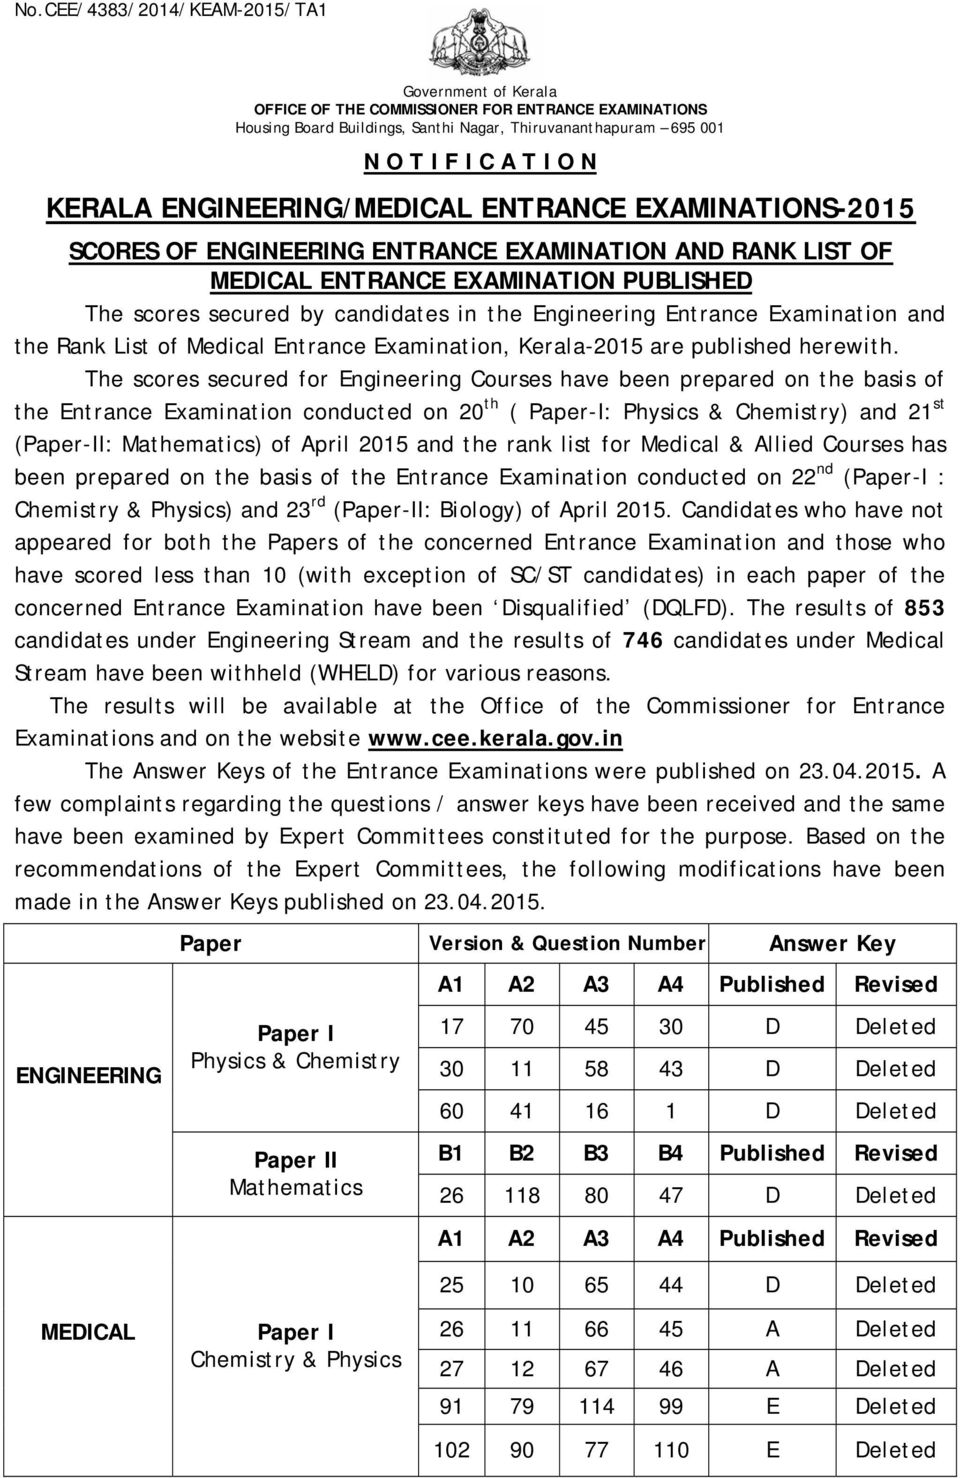 Engineering Entrance Examination and the Rank List of Medical Entrance Examination, Kerala-2015 are published herewith.